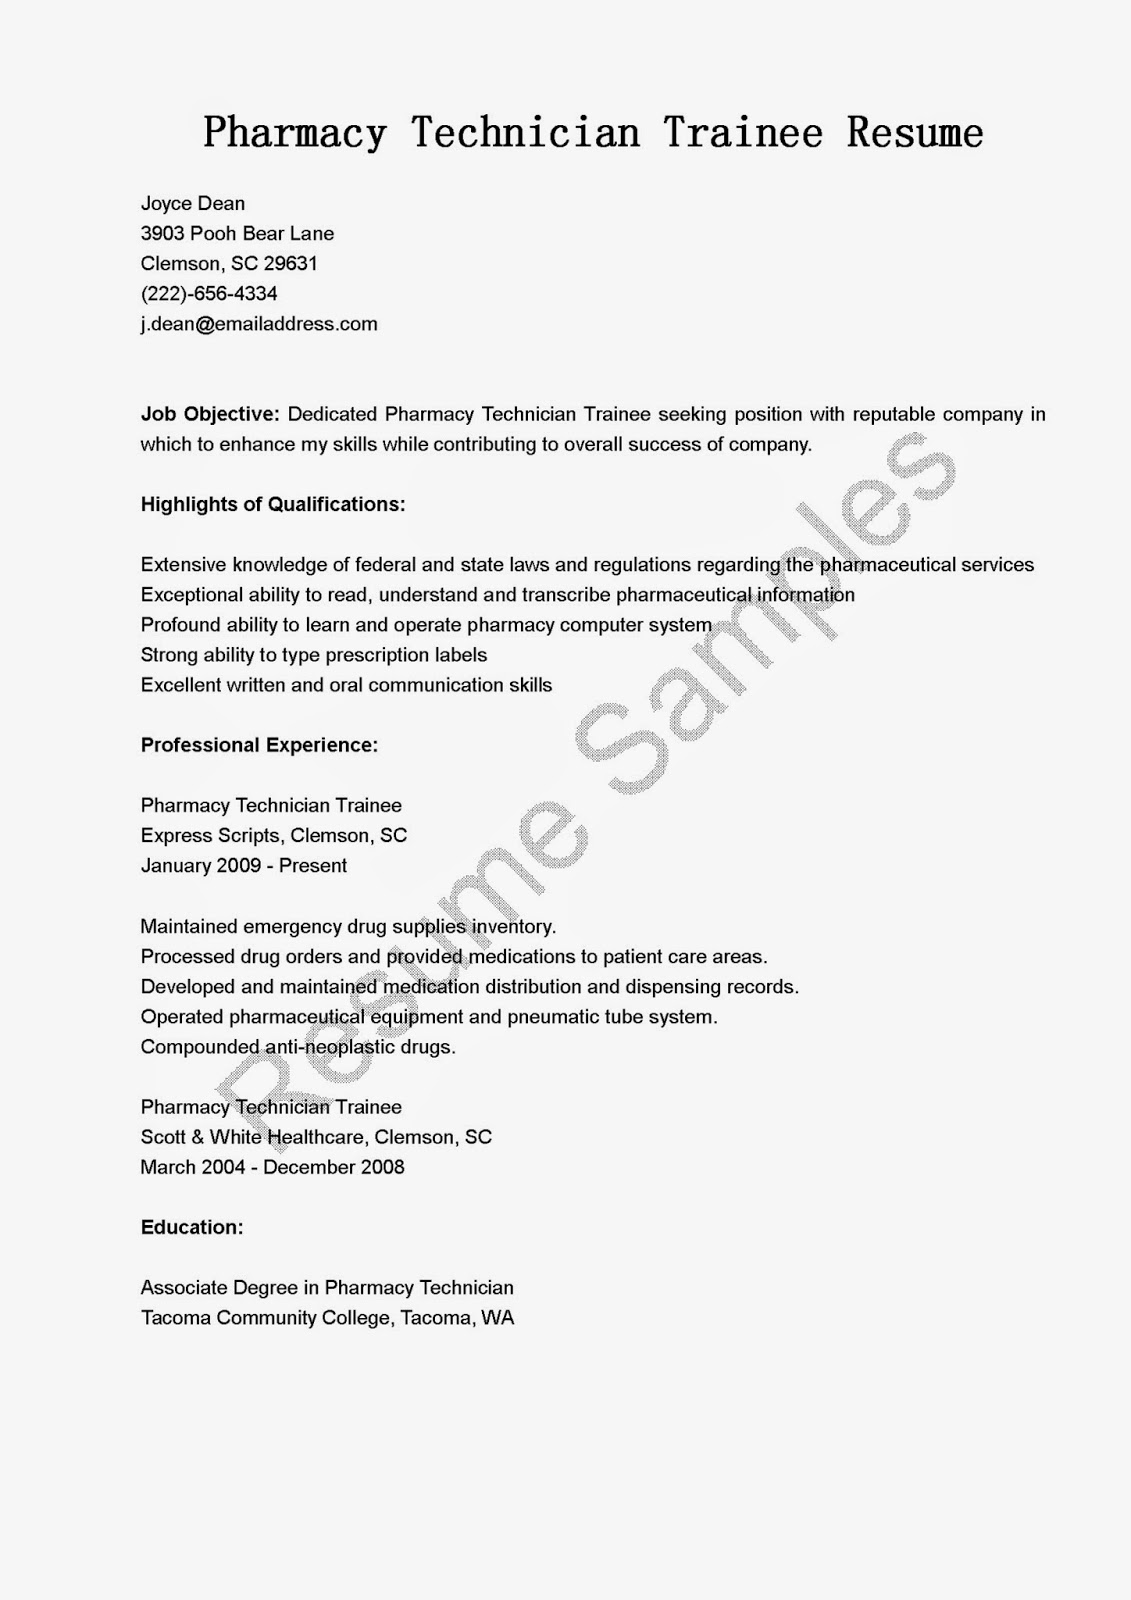 resume samples  pharmacy technician trainee resume sample